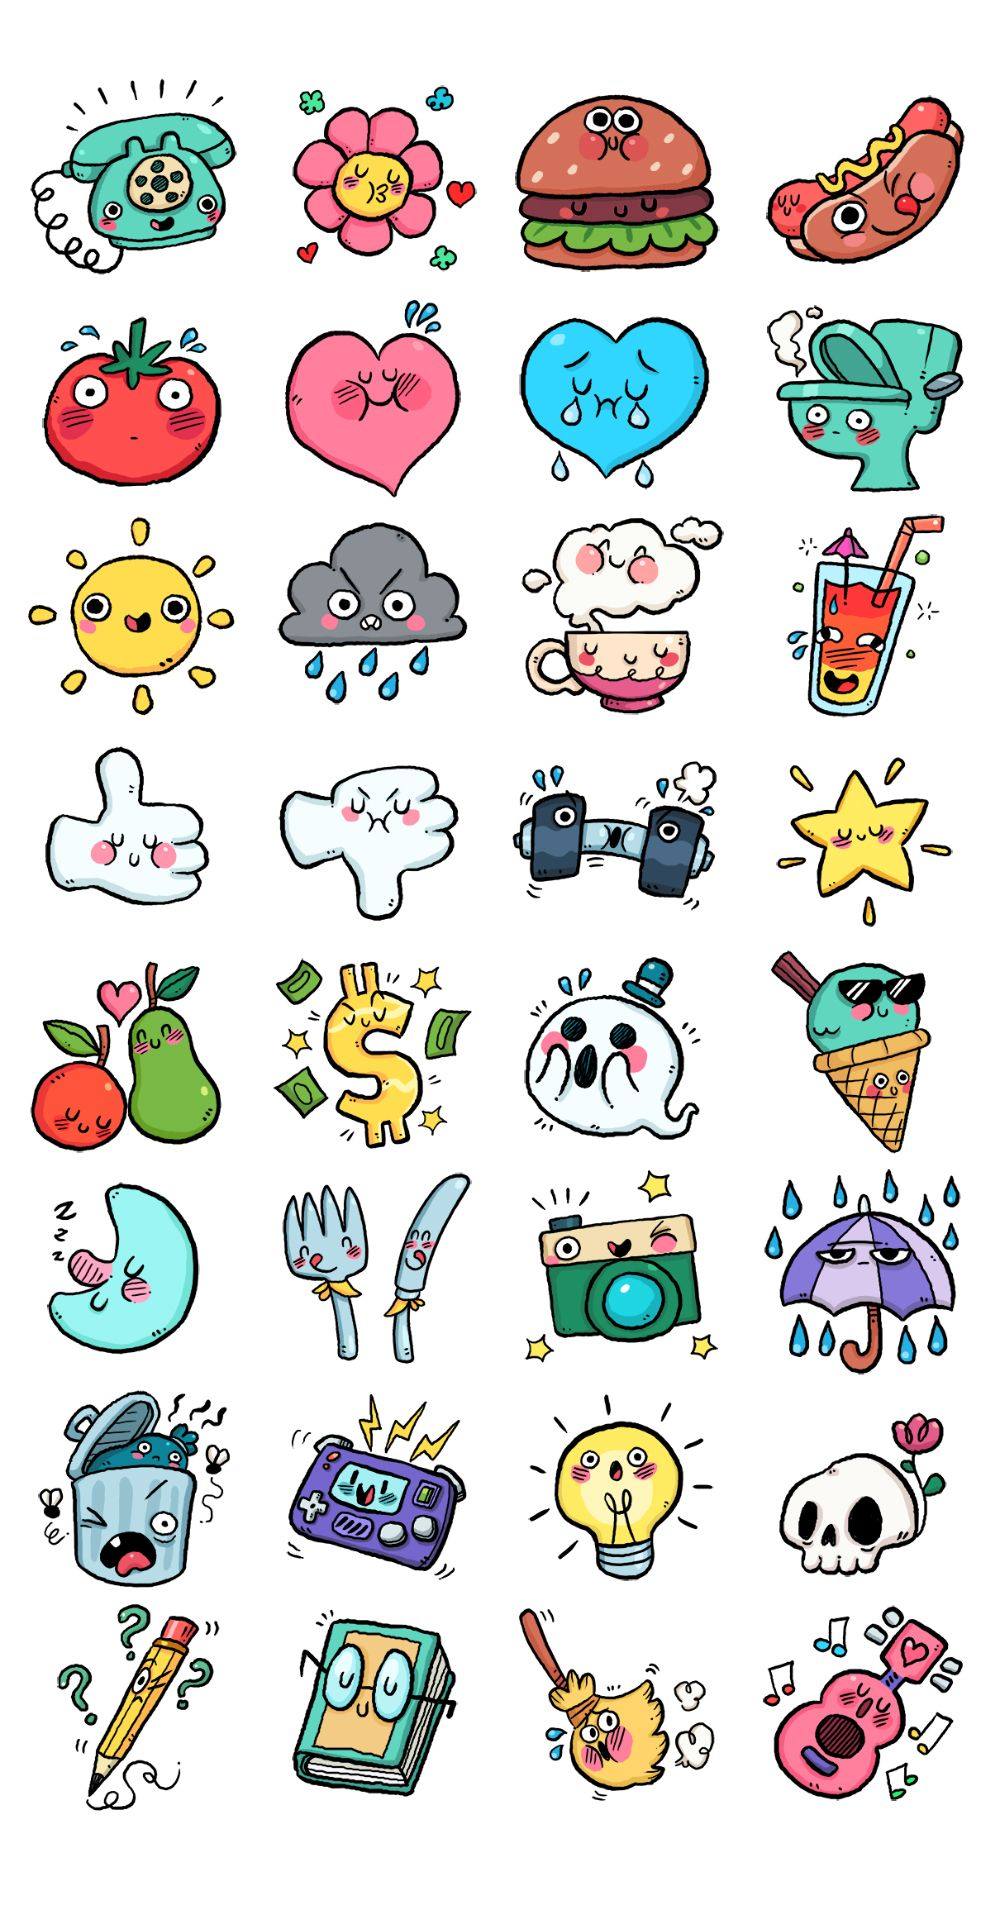 Chat app stickers on behance cute doodle art cute doodles drawings random doodles